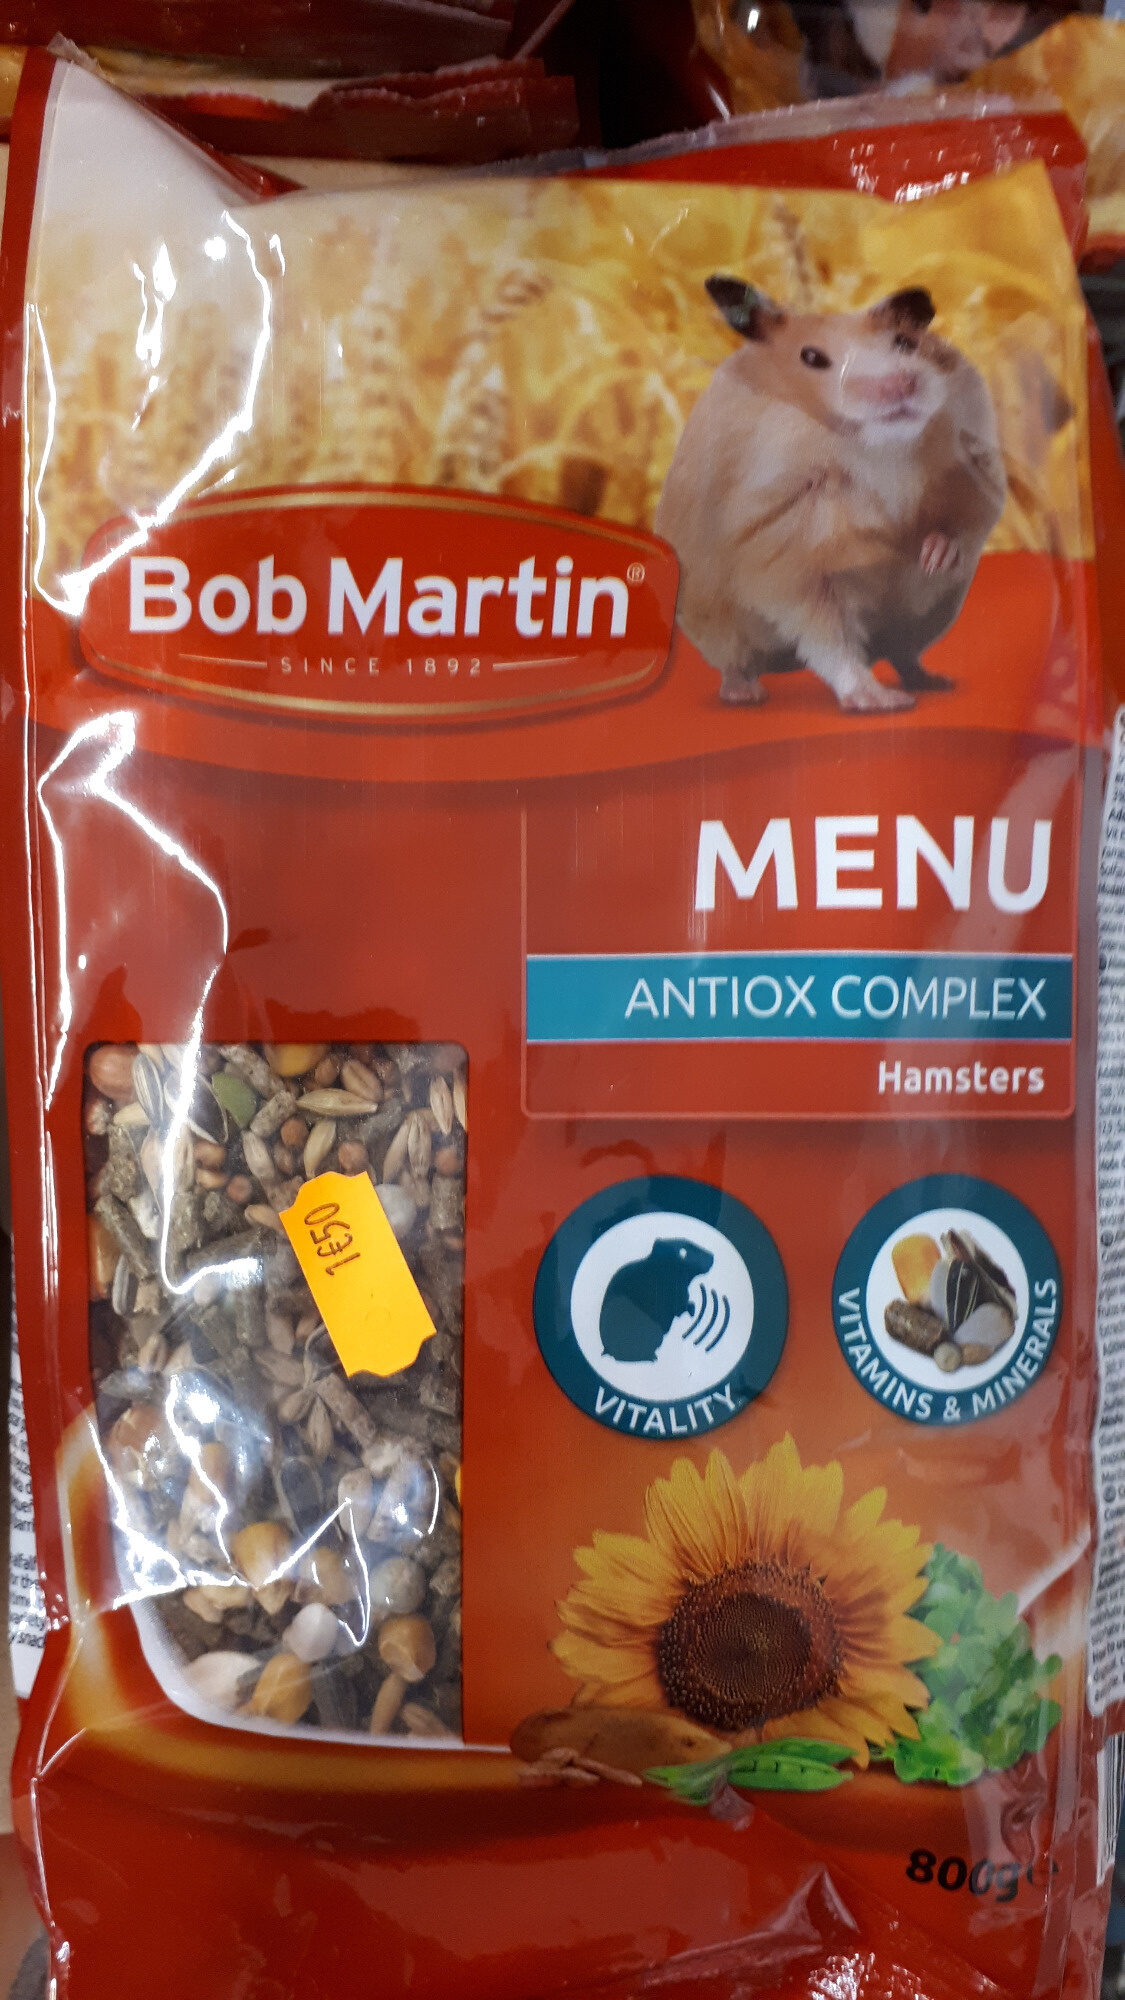 Aliment complet pour hamster - Product